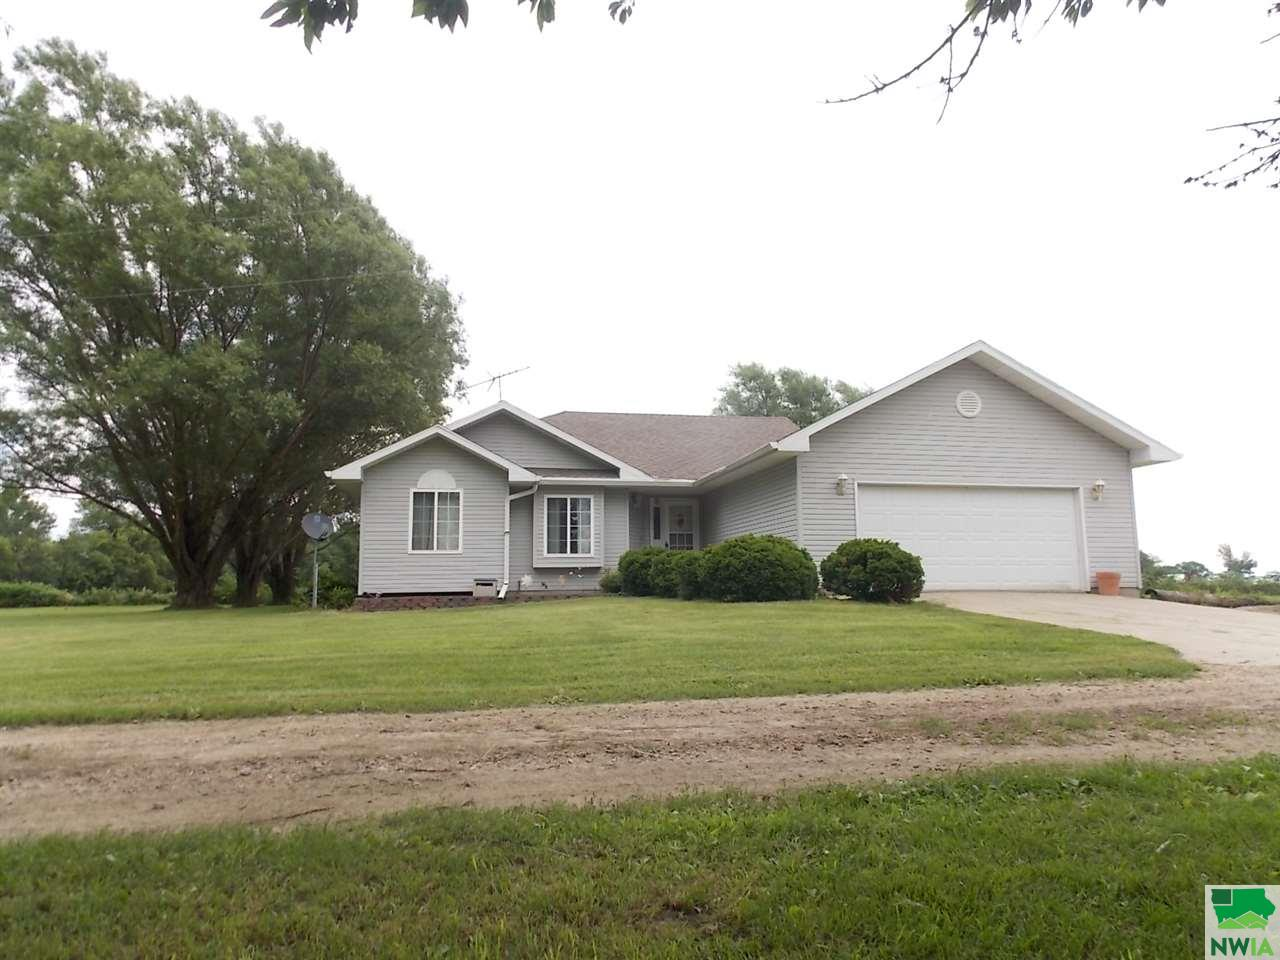 Property for sale at 769 143rd St, South Sioux City,  NE 68776